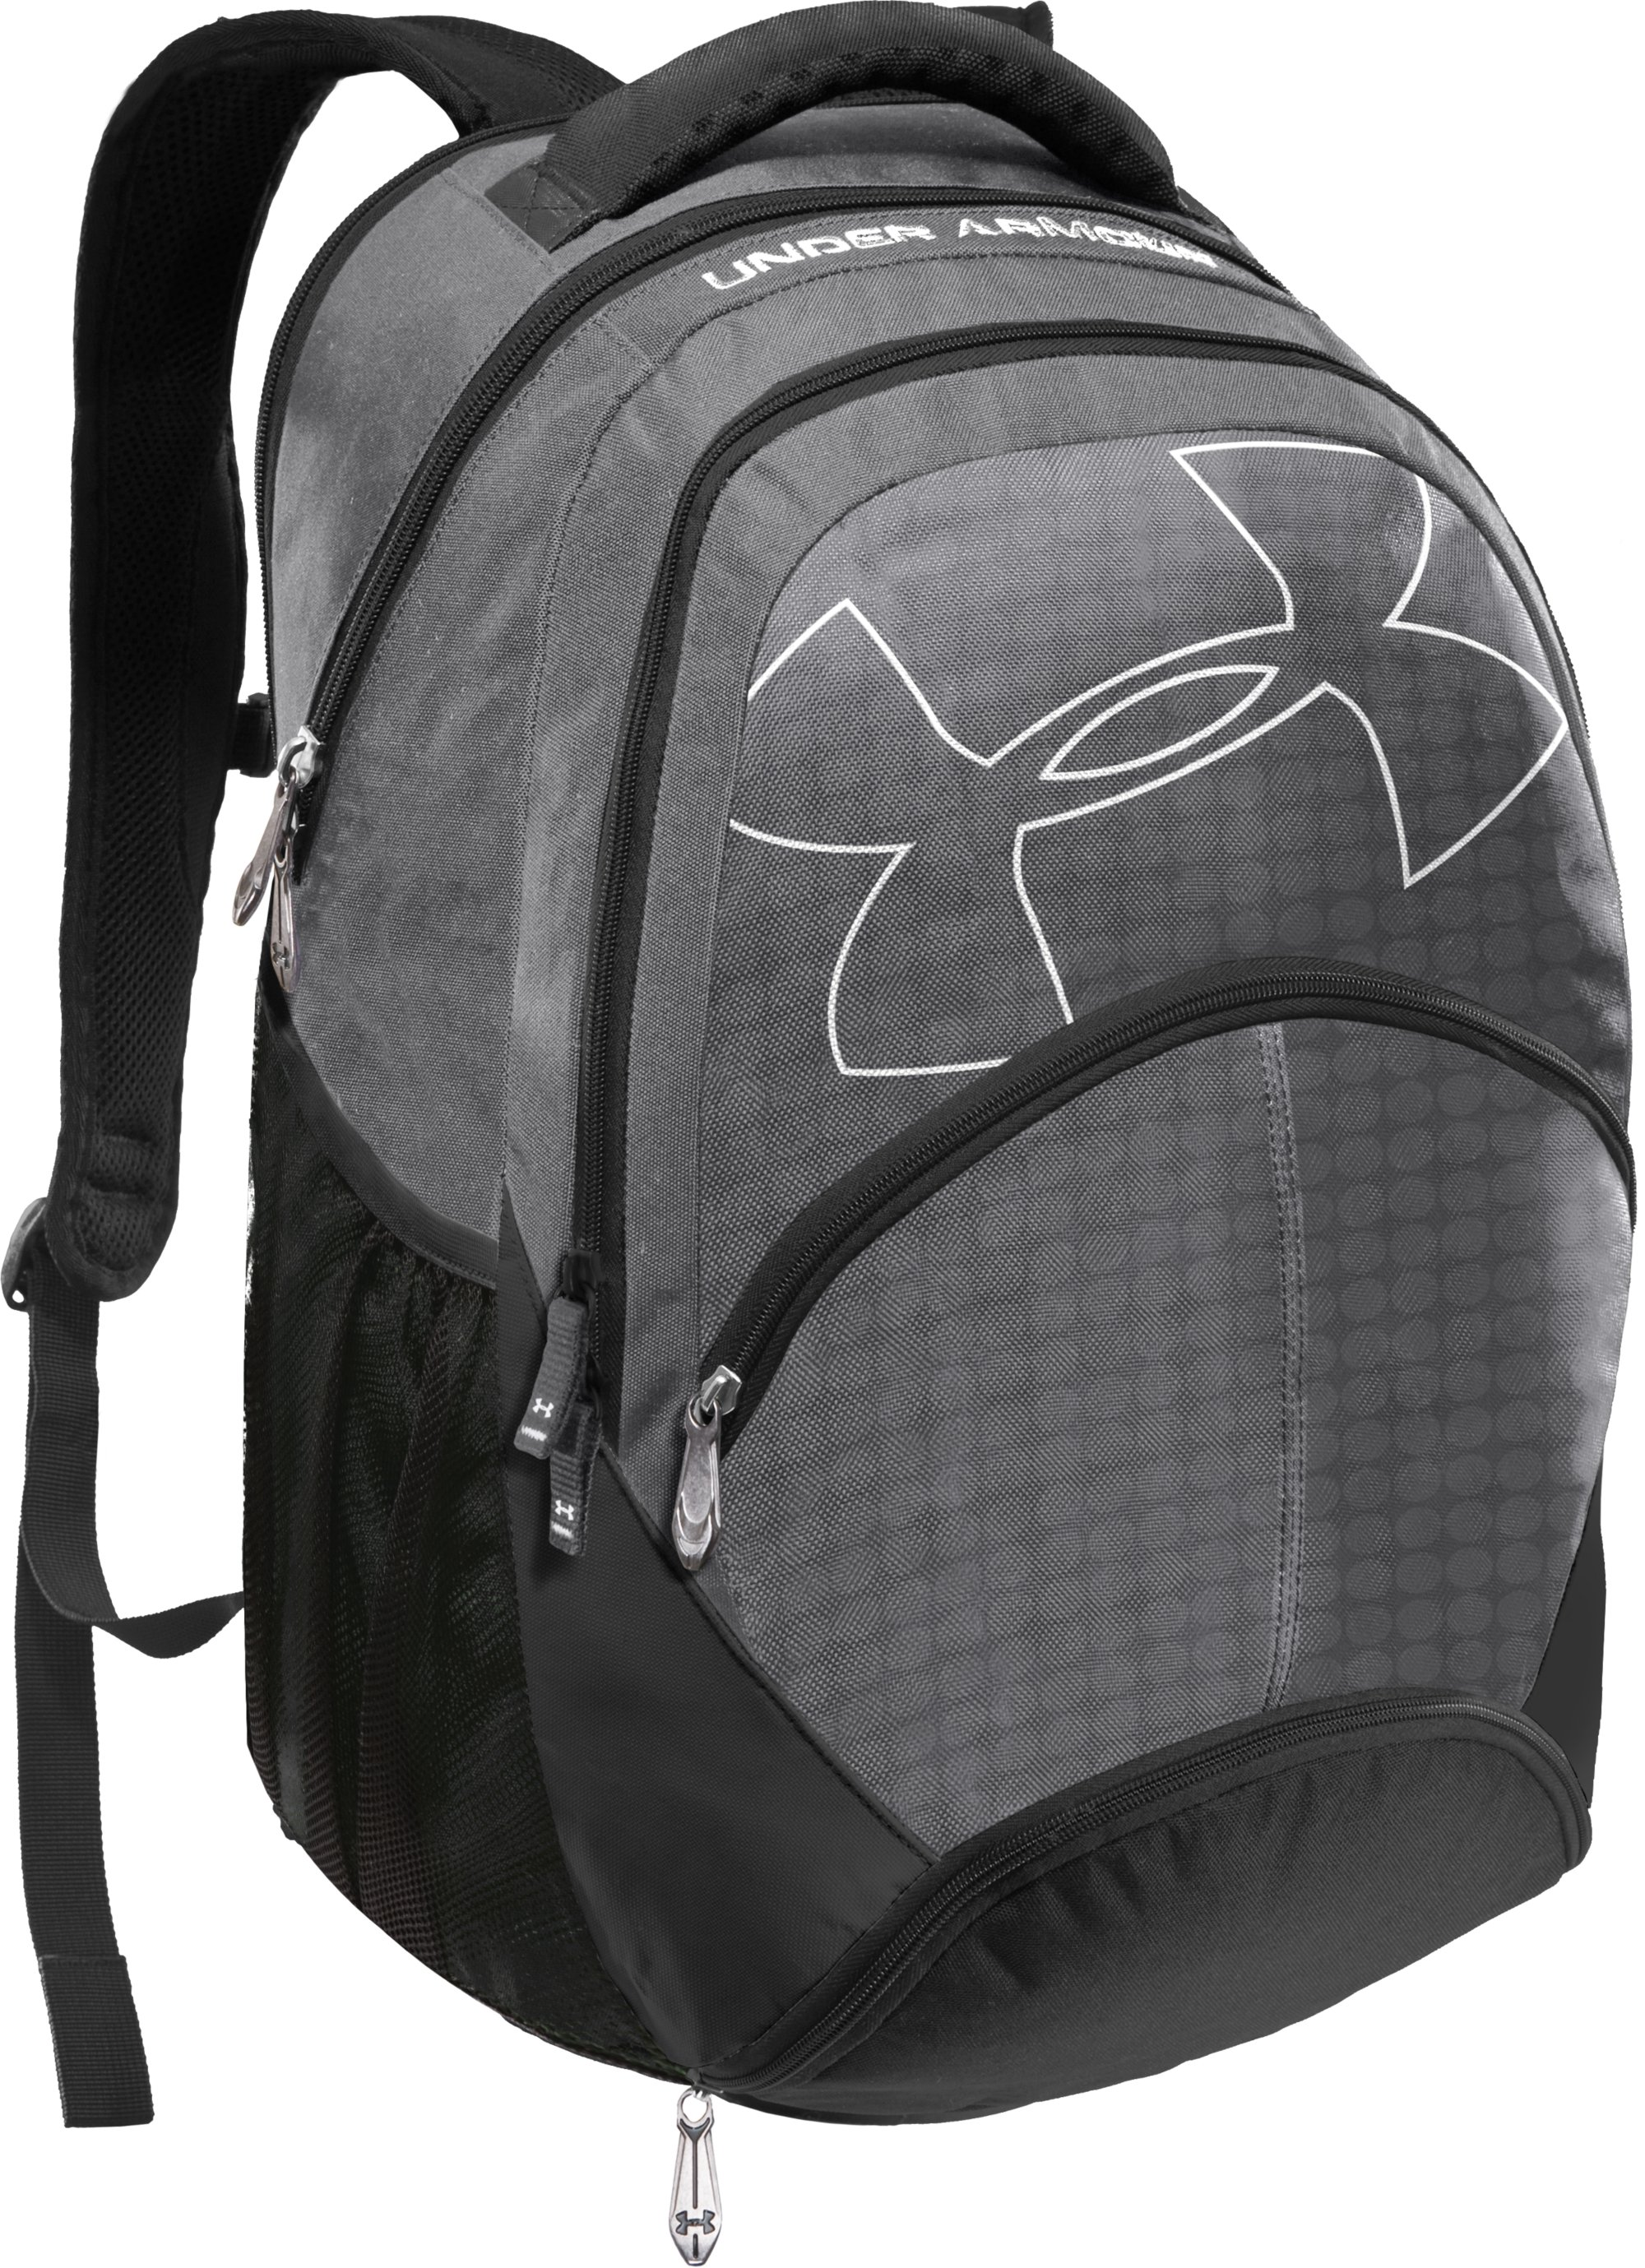 Biggest School Backpack - Crazy Backpacks